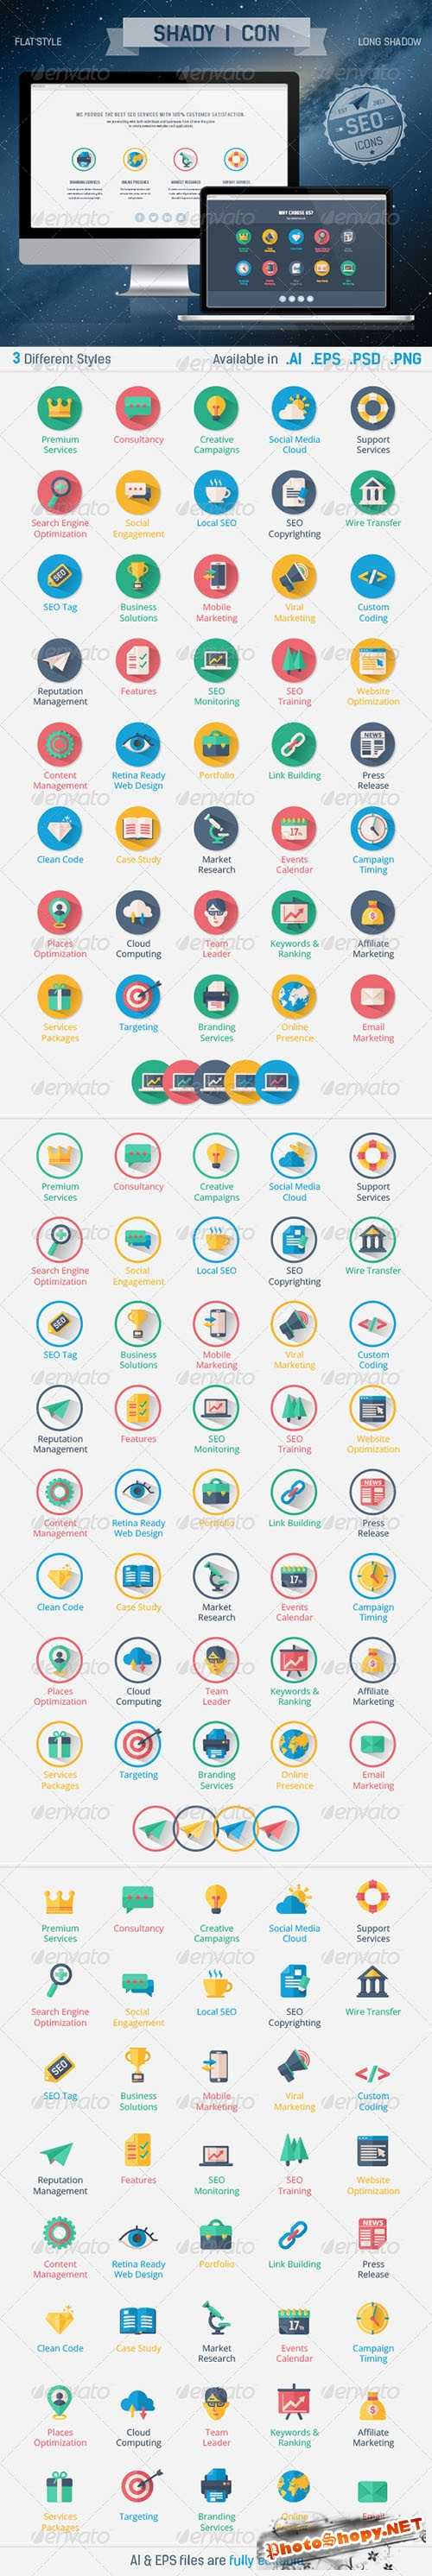 GraphicRiver - Shady I Con Seo Flat + Long Shadow Icons 5903410